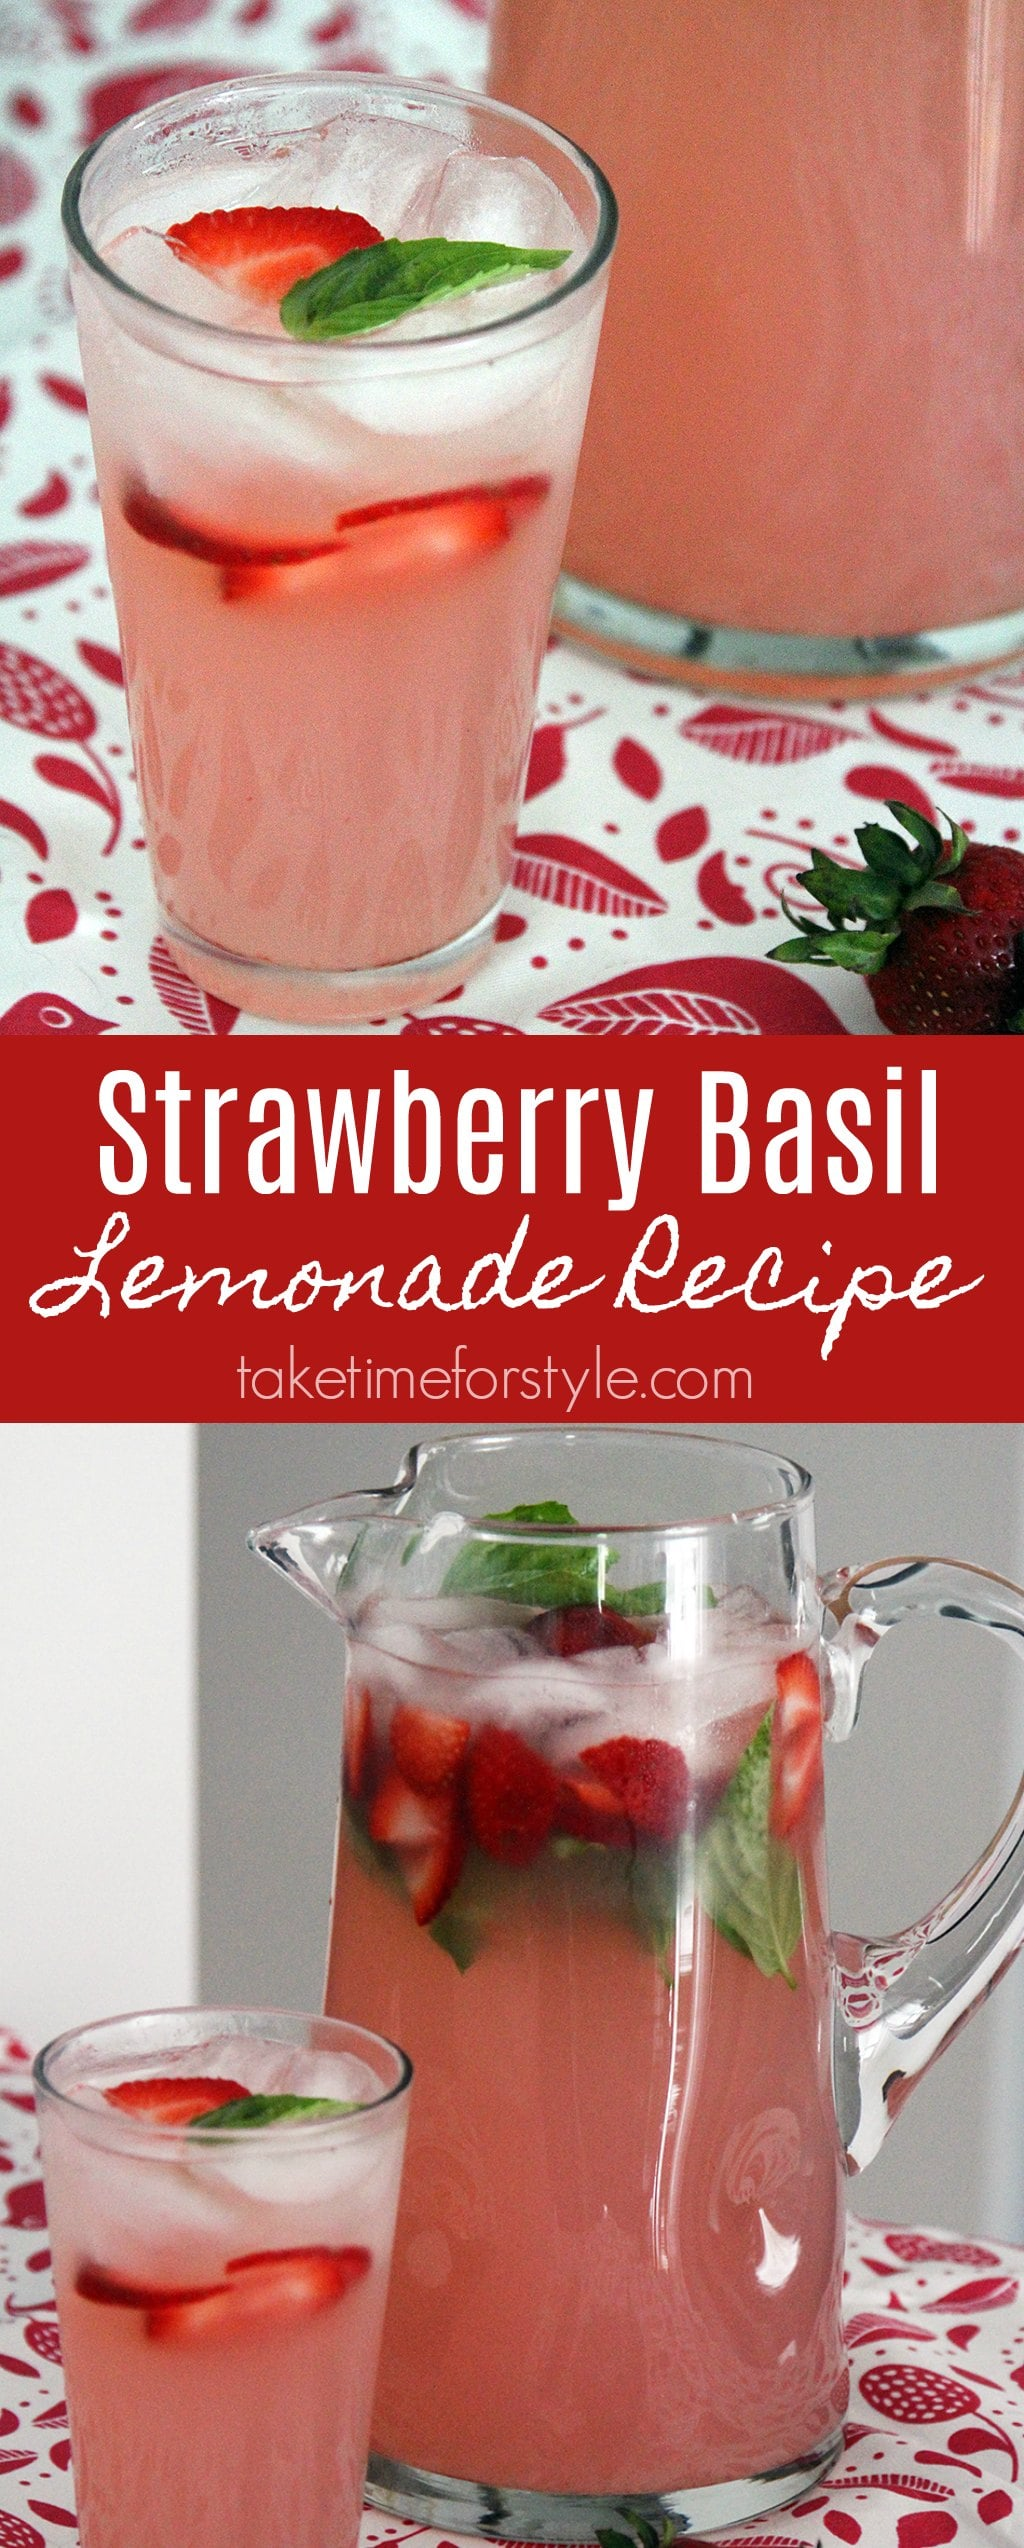 A Strawberry Basil Lemonade recipe that can be made as is or spiked with Vodka. With ingredients like fresh fruit and herbs, it's perfect for summer entertaining!